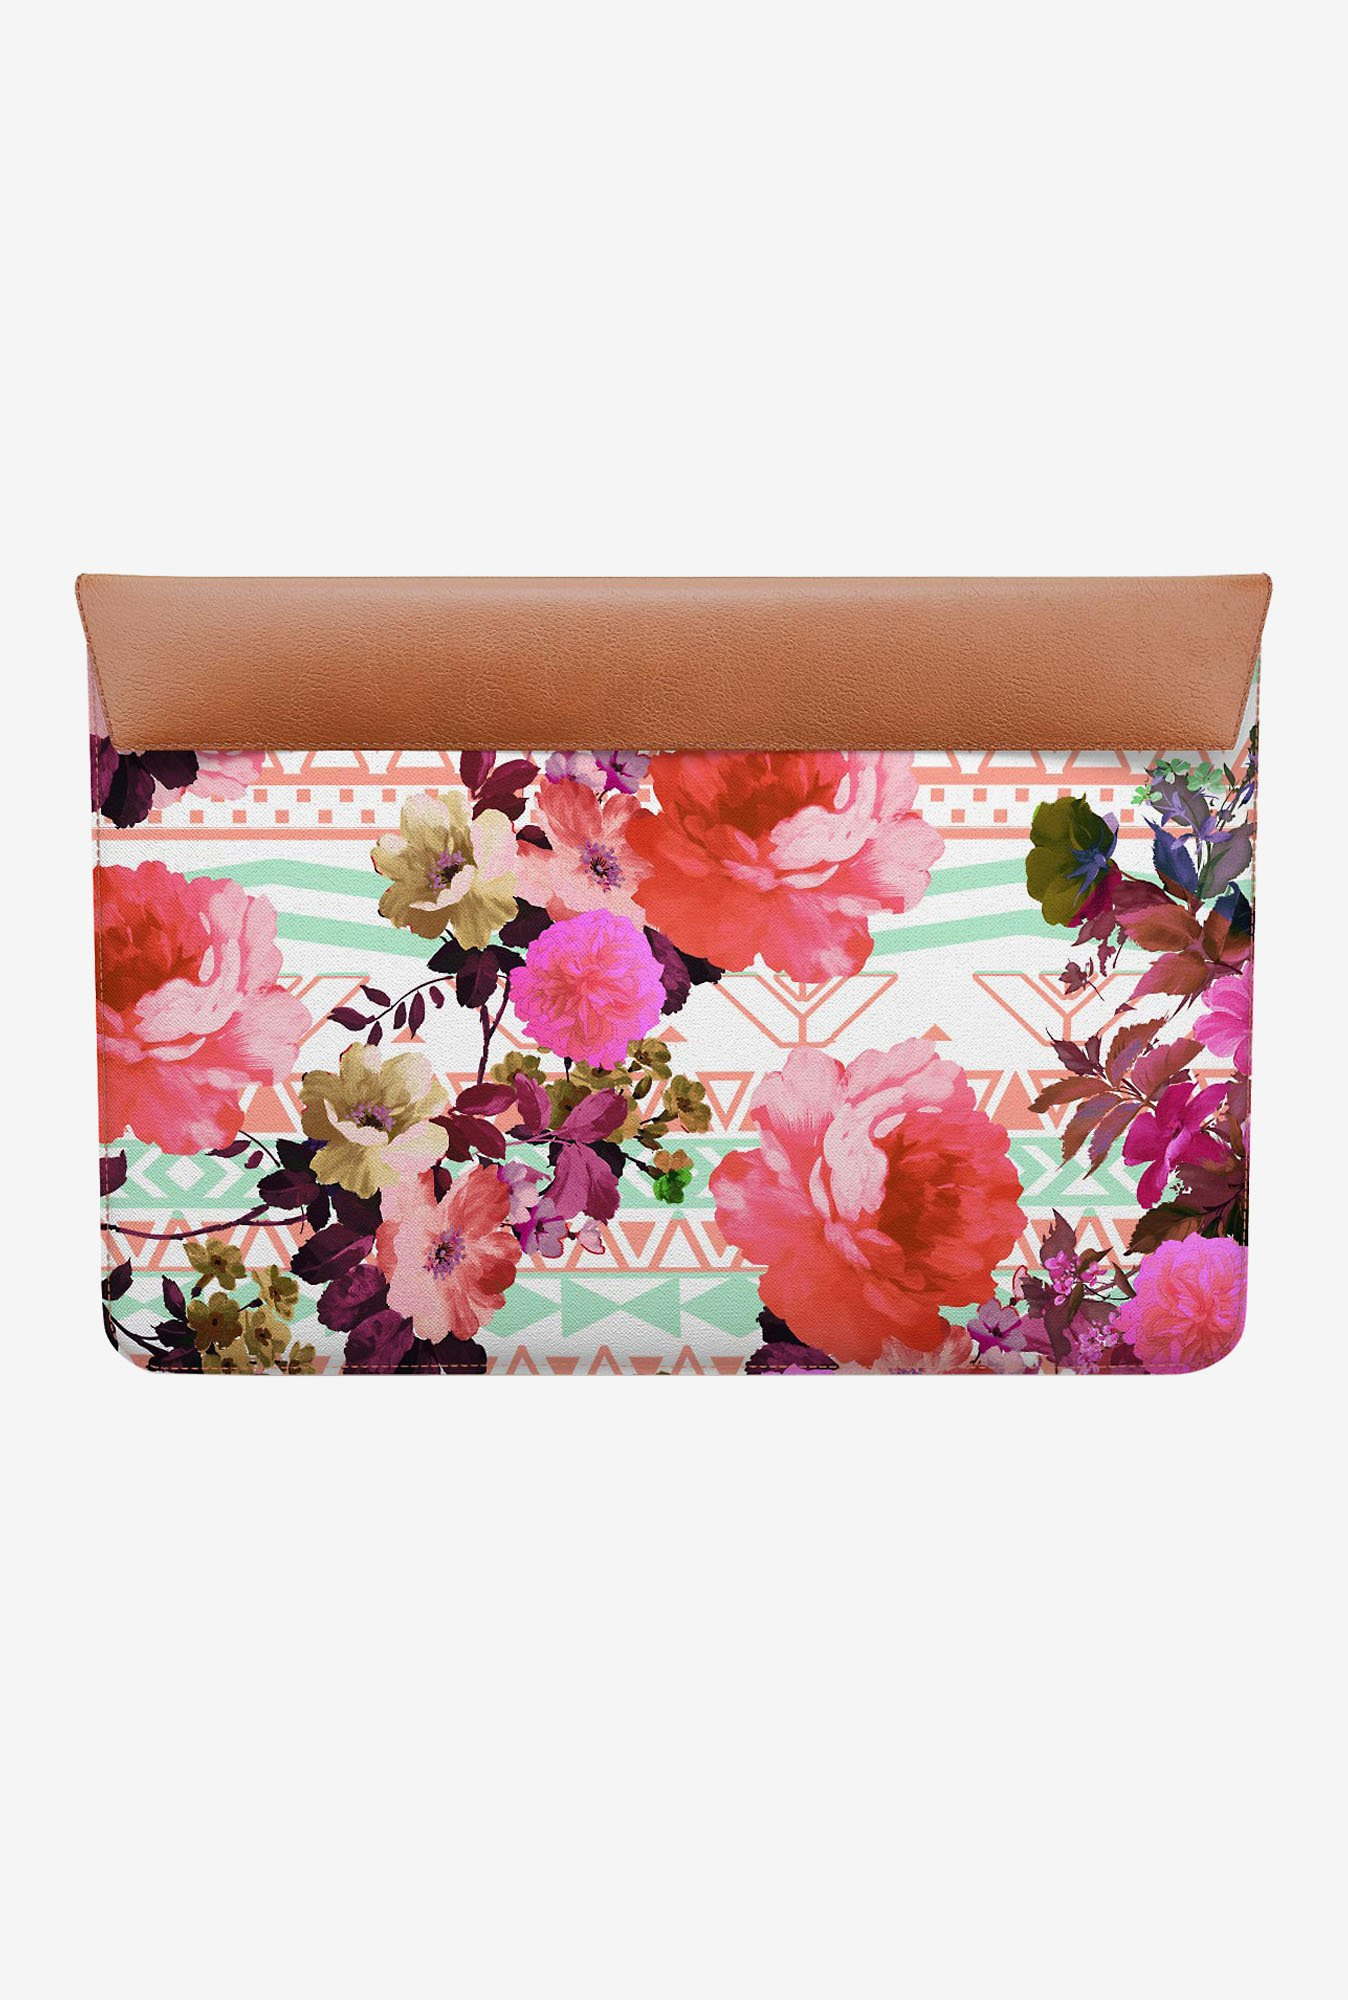 DailyObjects Flower Tribe MacBook Pro 15 Envelope Sleeve